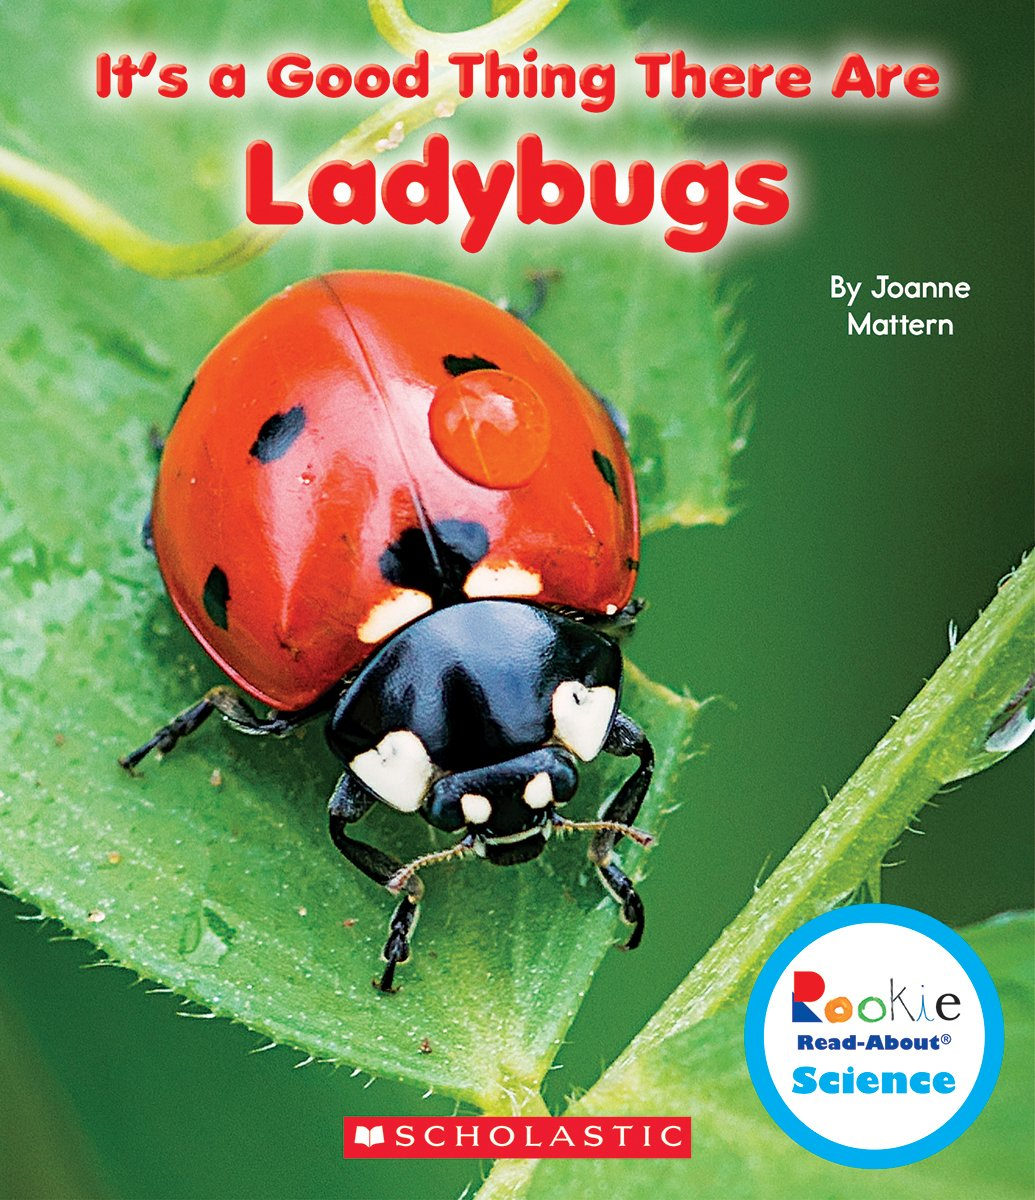 Amazon.com: It's a Good Thing There Are Ladybugs (Rookie Read-About Science)  (9780531228302): Joanne Mattern: Books